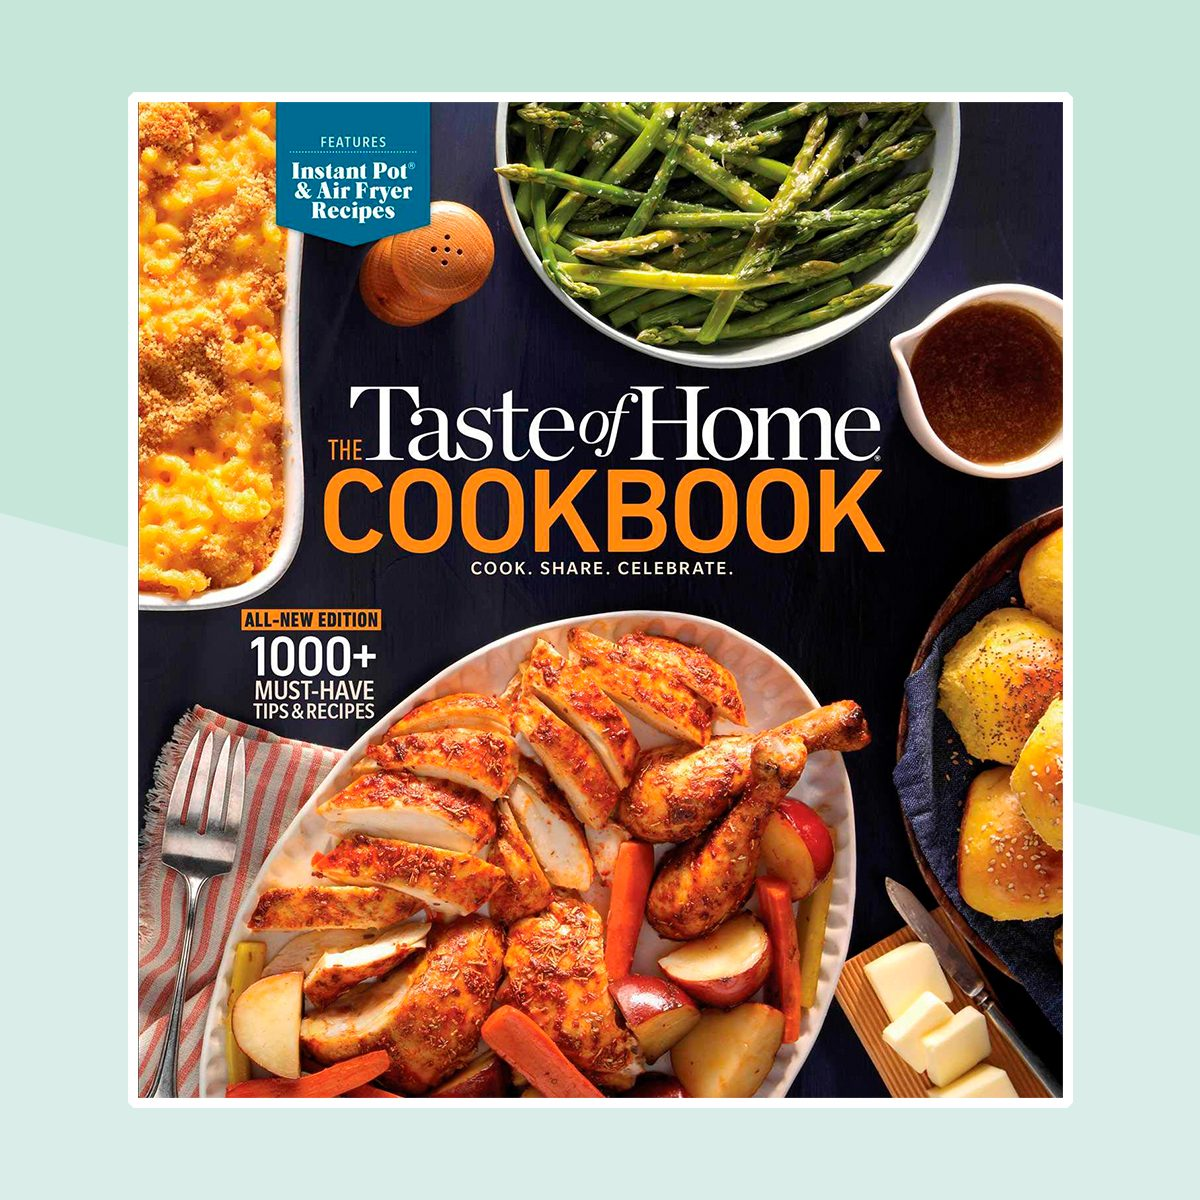 The Taste of Home Cookbook, 5th Edition: Cook. Share. Celebrate